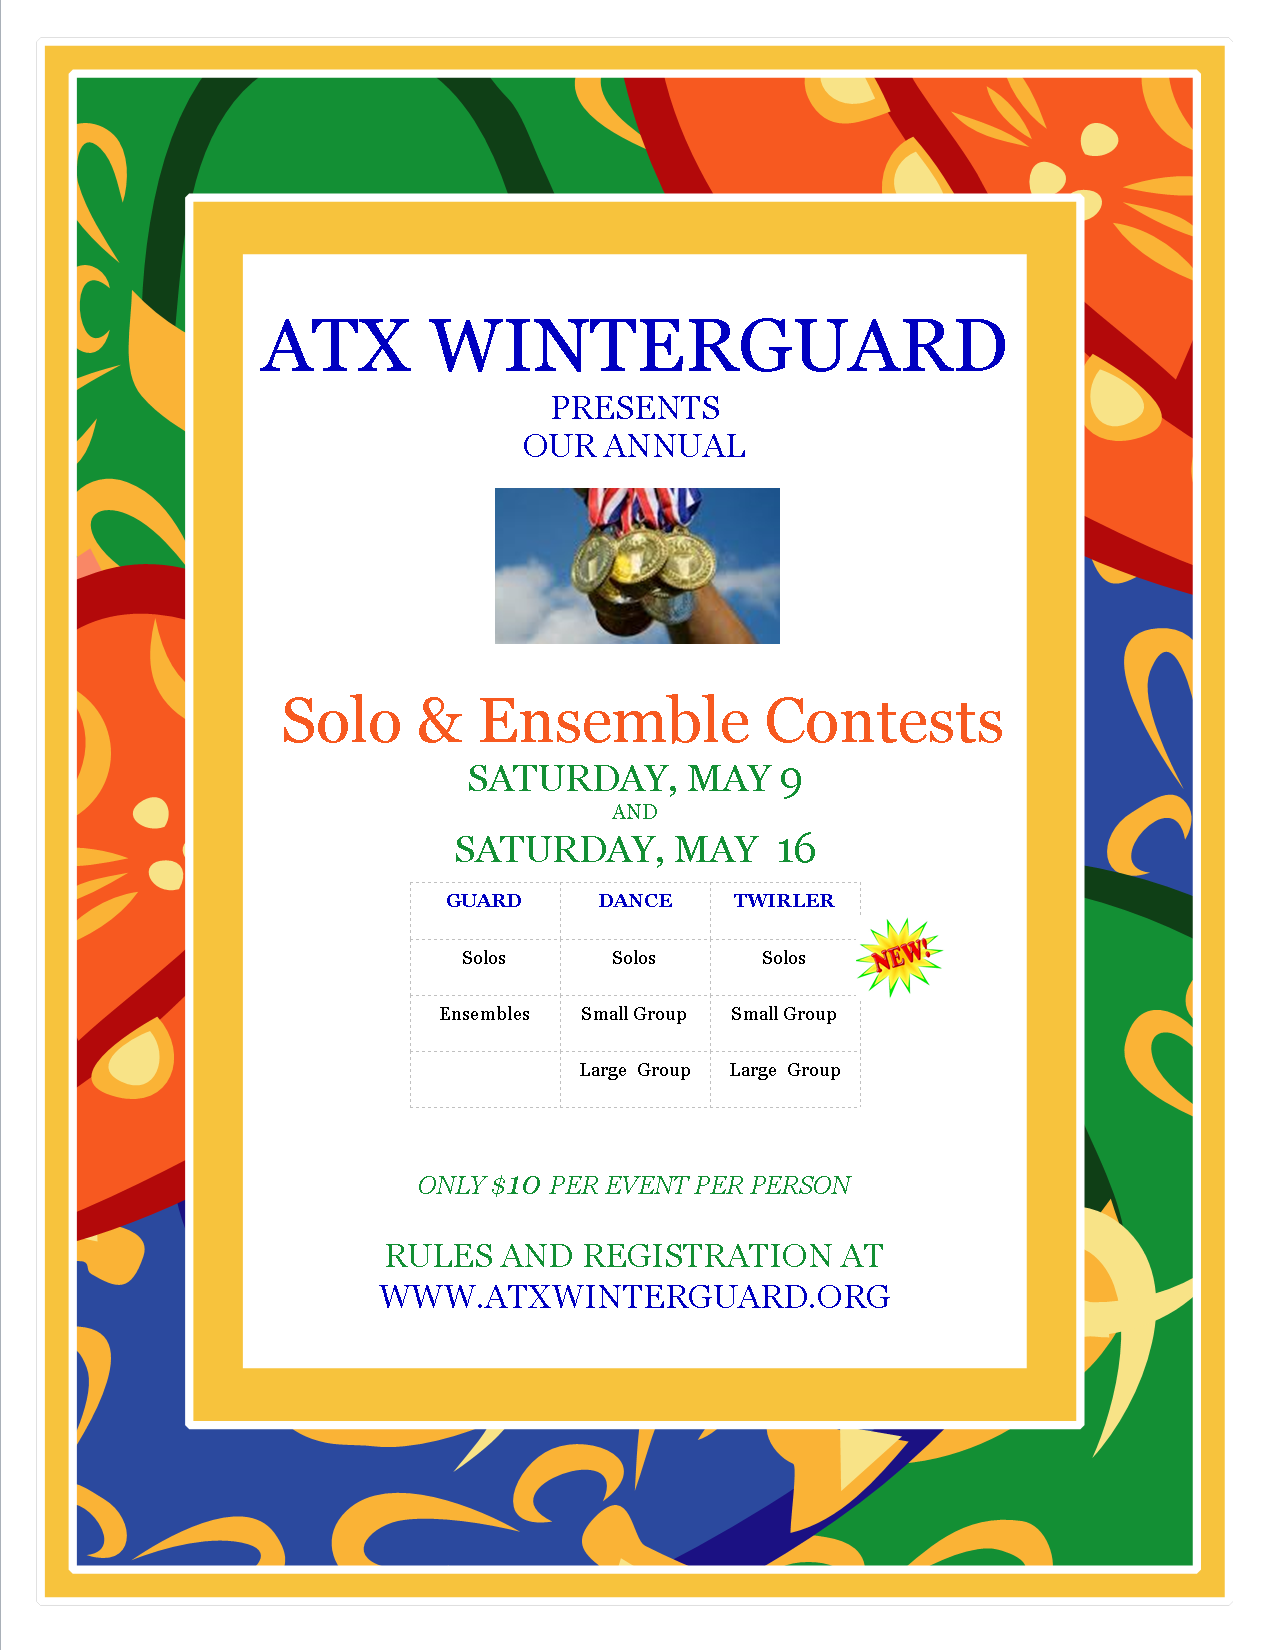 ATX Winterguard to host solo and ensemble contests